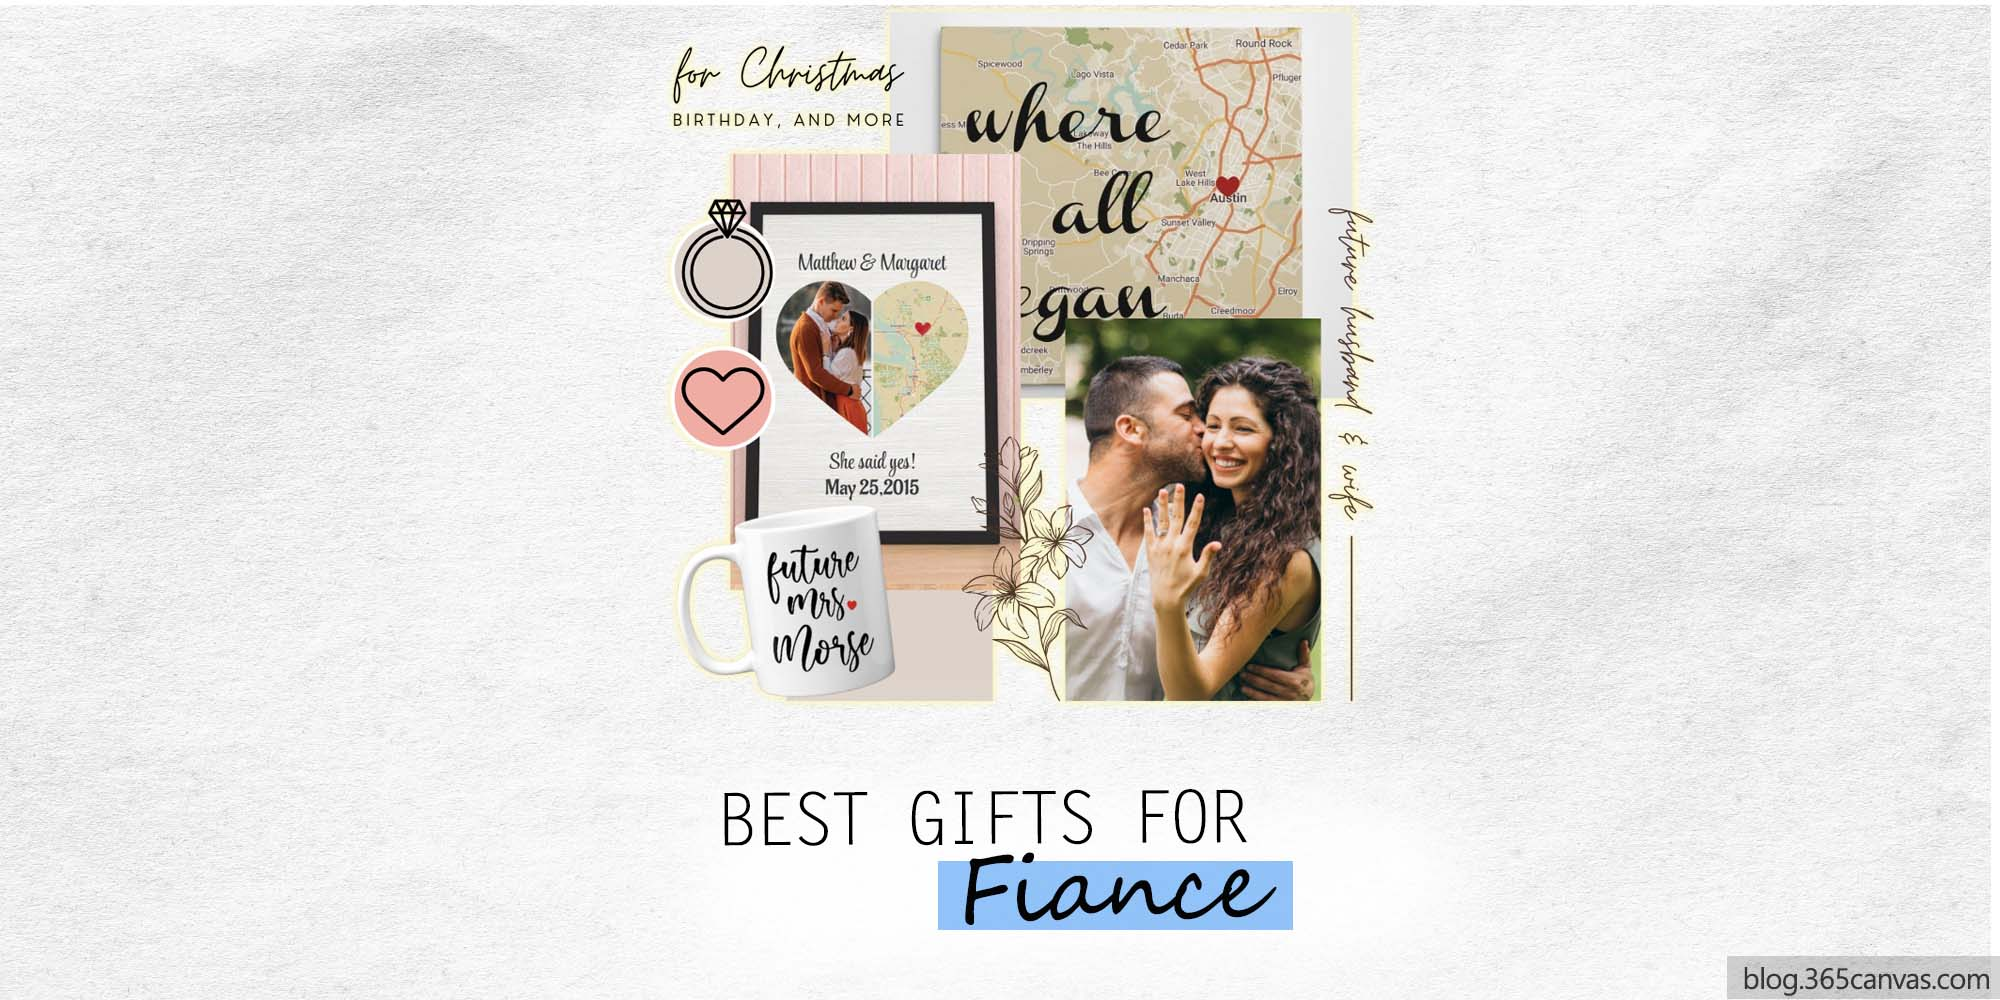 29 Best Gifts for Fiance This Holiday, Birthday & More (2021)